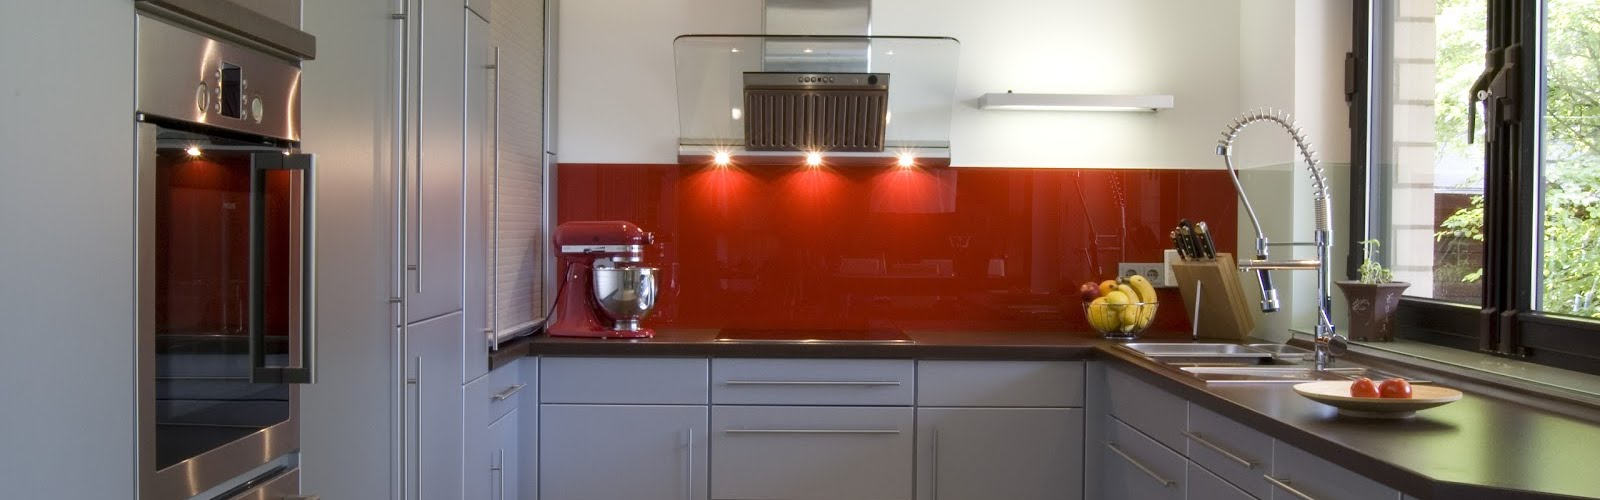 Kitchen Splash Backs